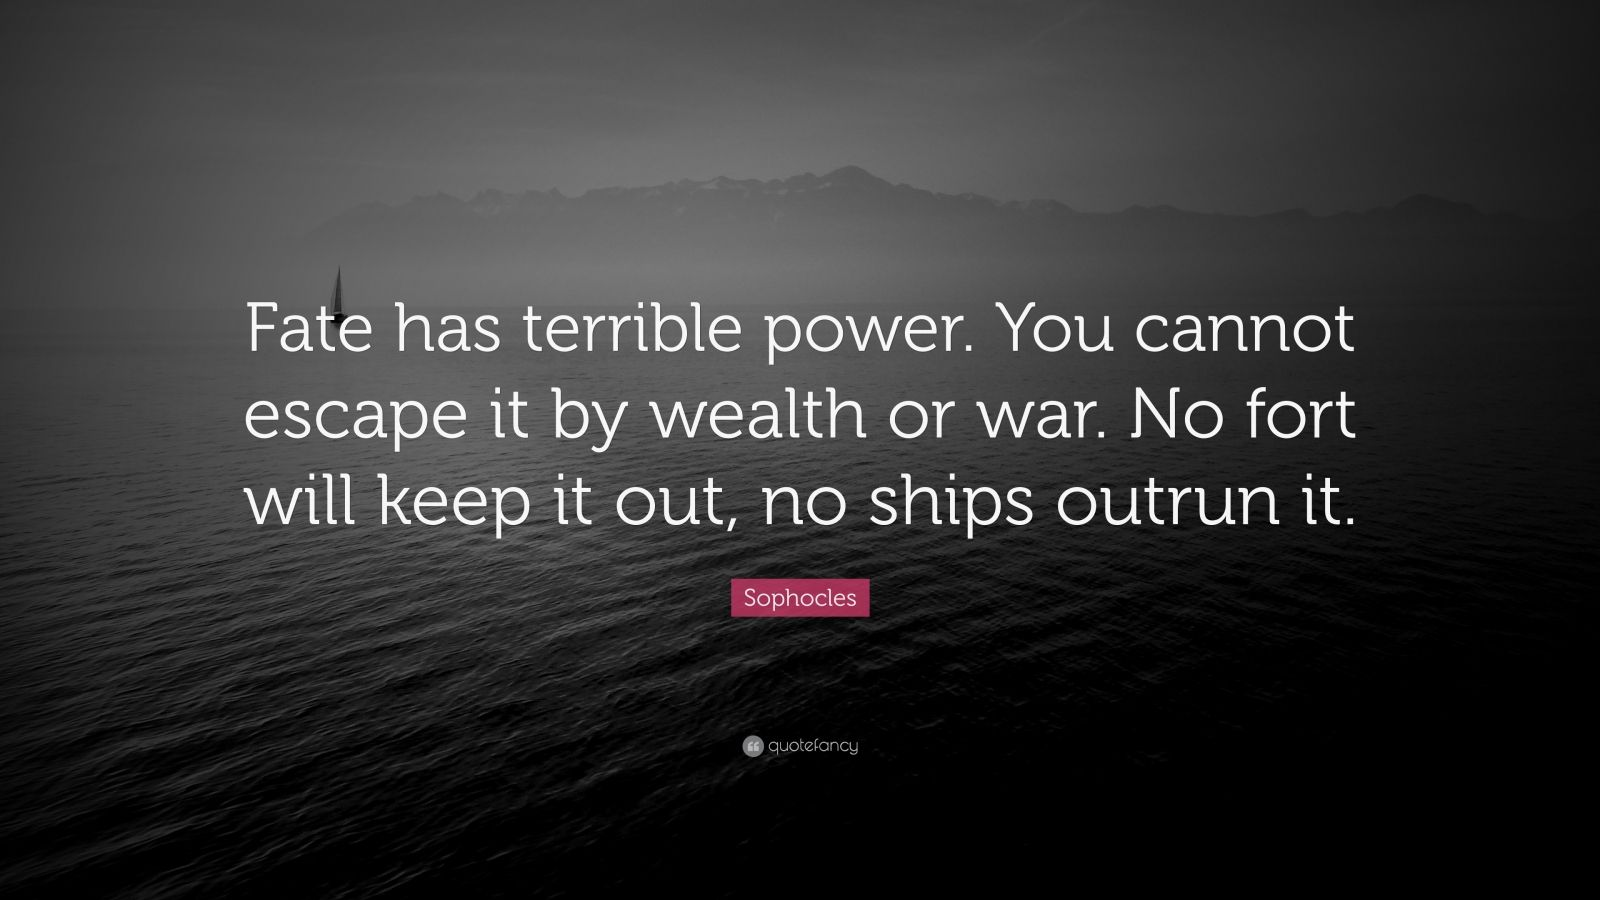 """Sophocles Quote: """"Fate has terrible power. You cannot escape it by wealth or war. No fort will keep it out, no ships outrun it."""""""